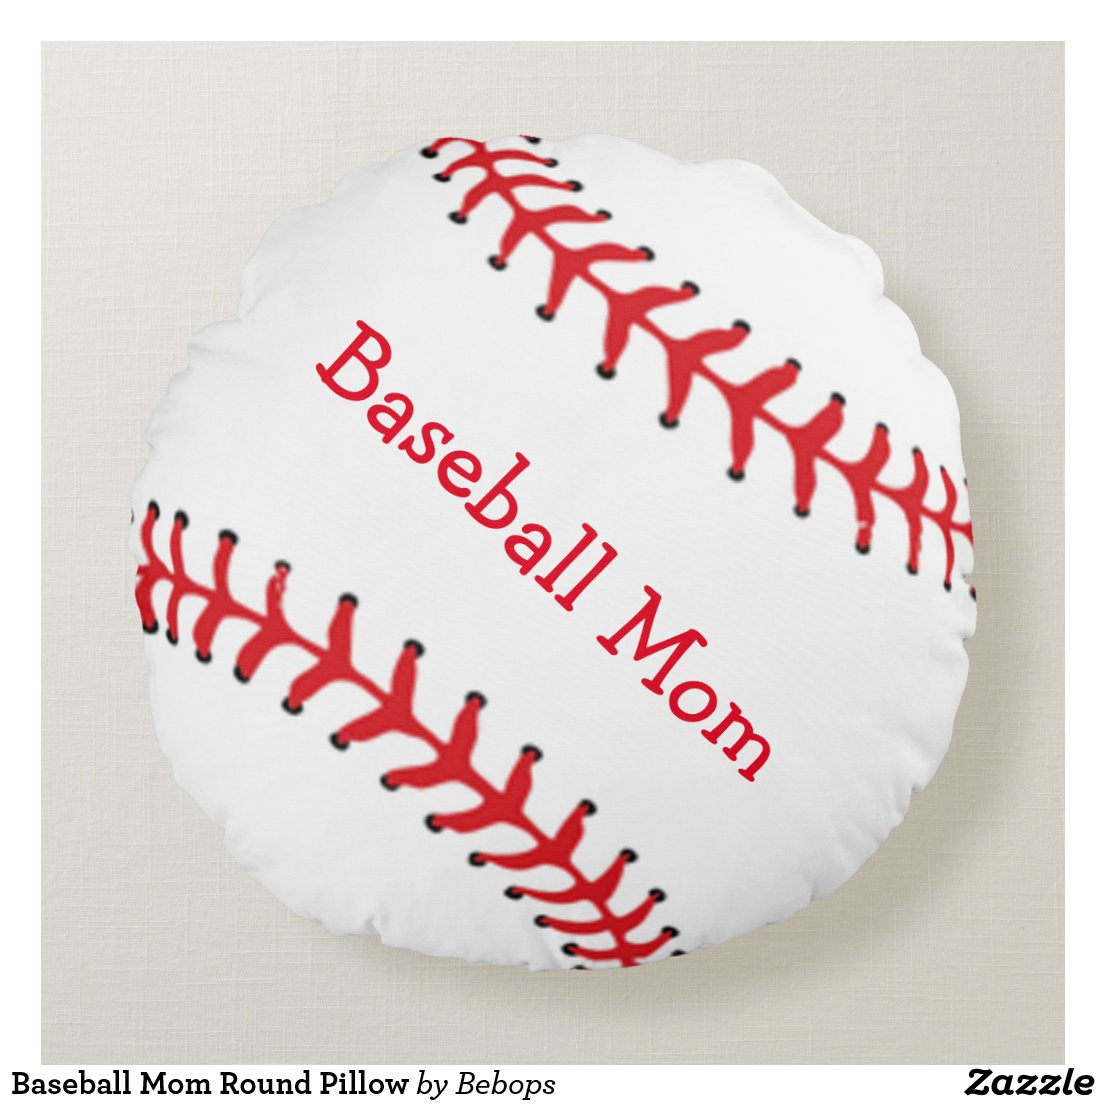 Baseball Mom Round Pillow